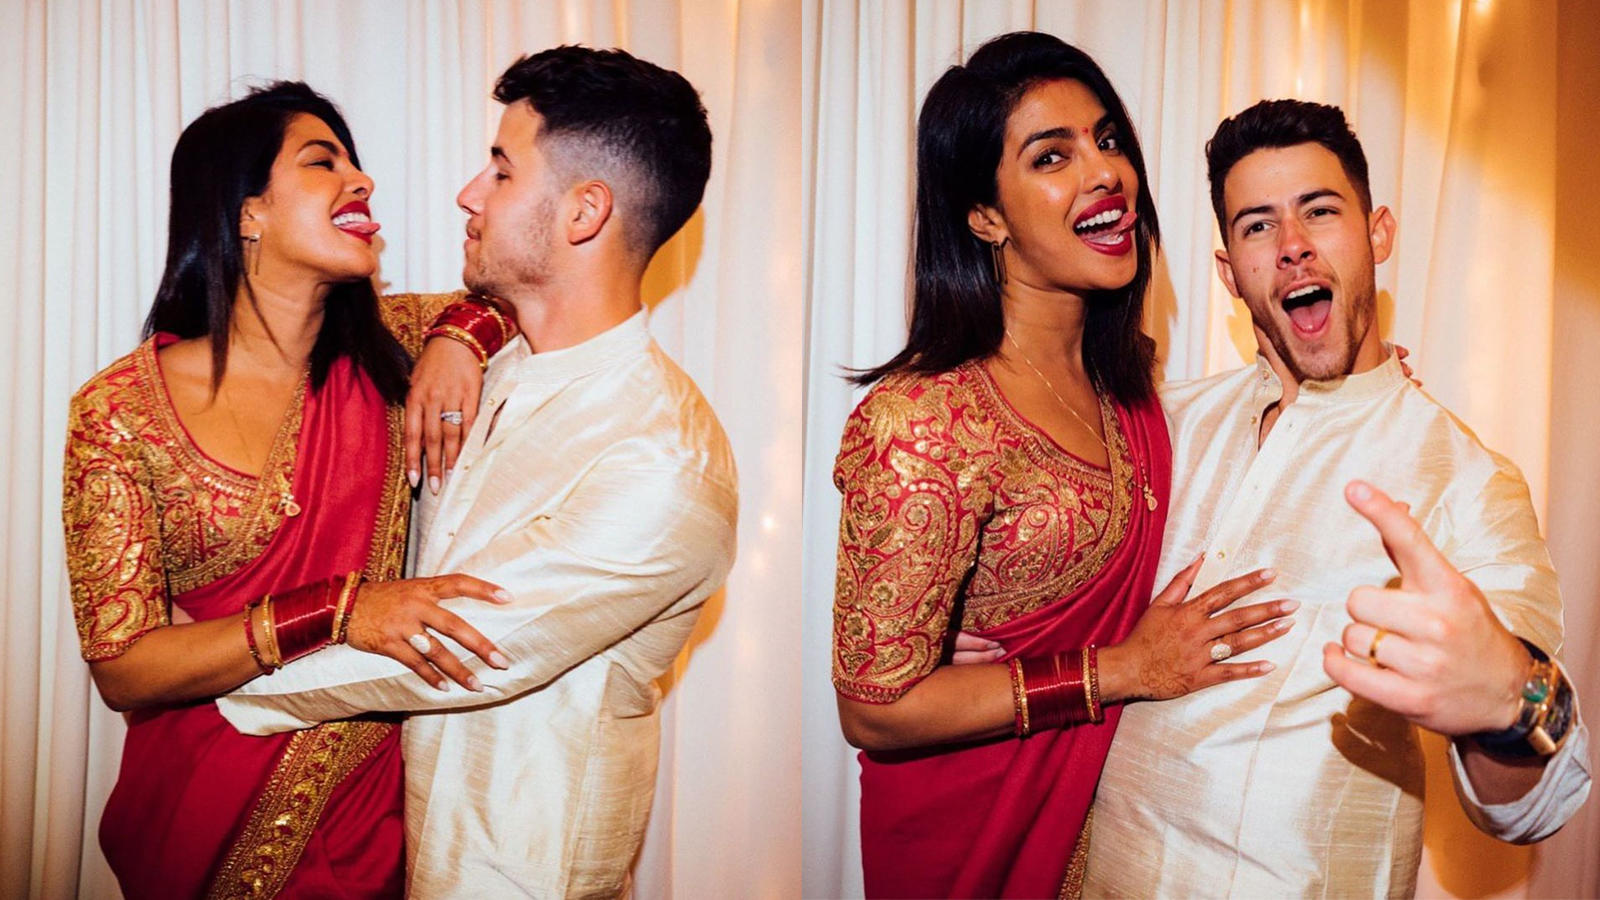 karwa-chauth-2019-nick-jonas-posts-adorable-photos-with-wifey-priyanka-chopra